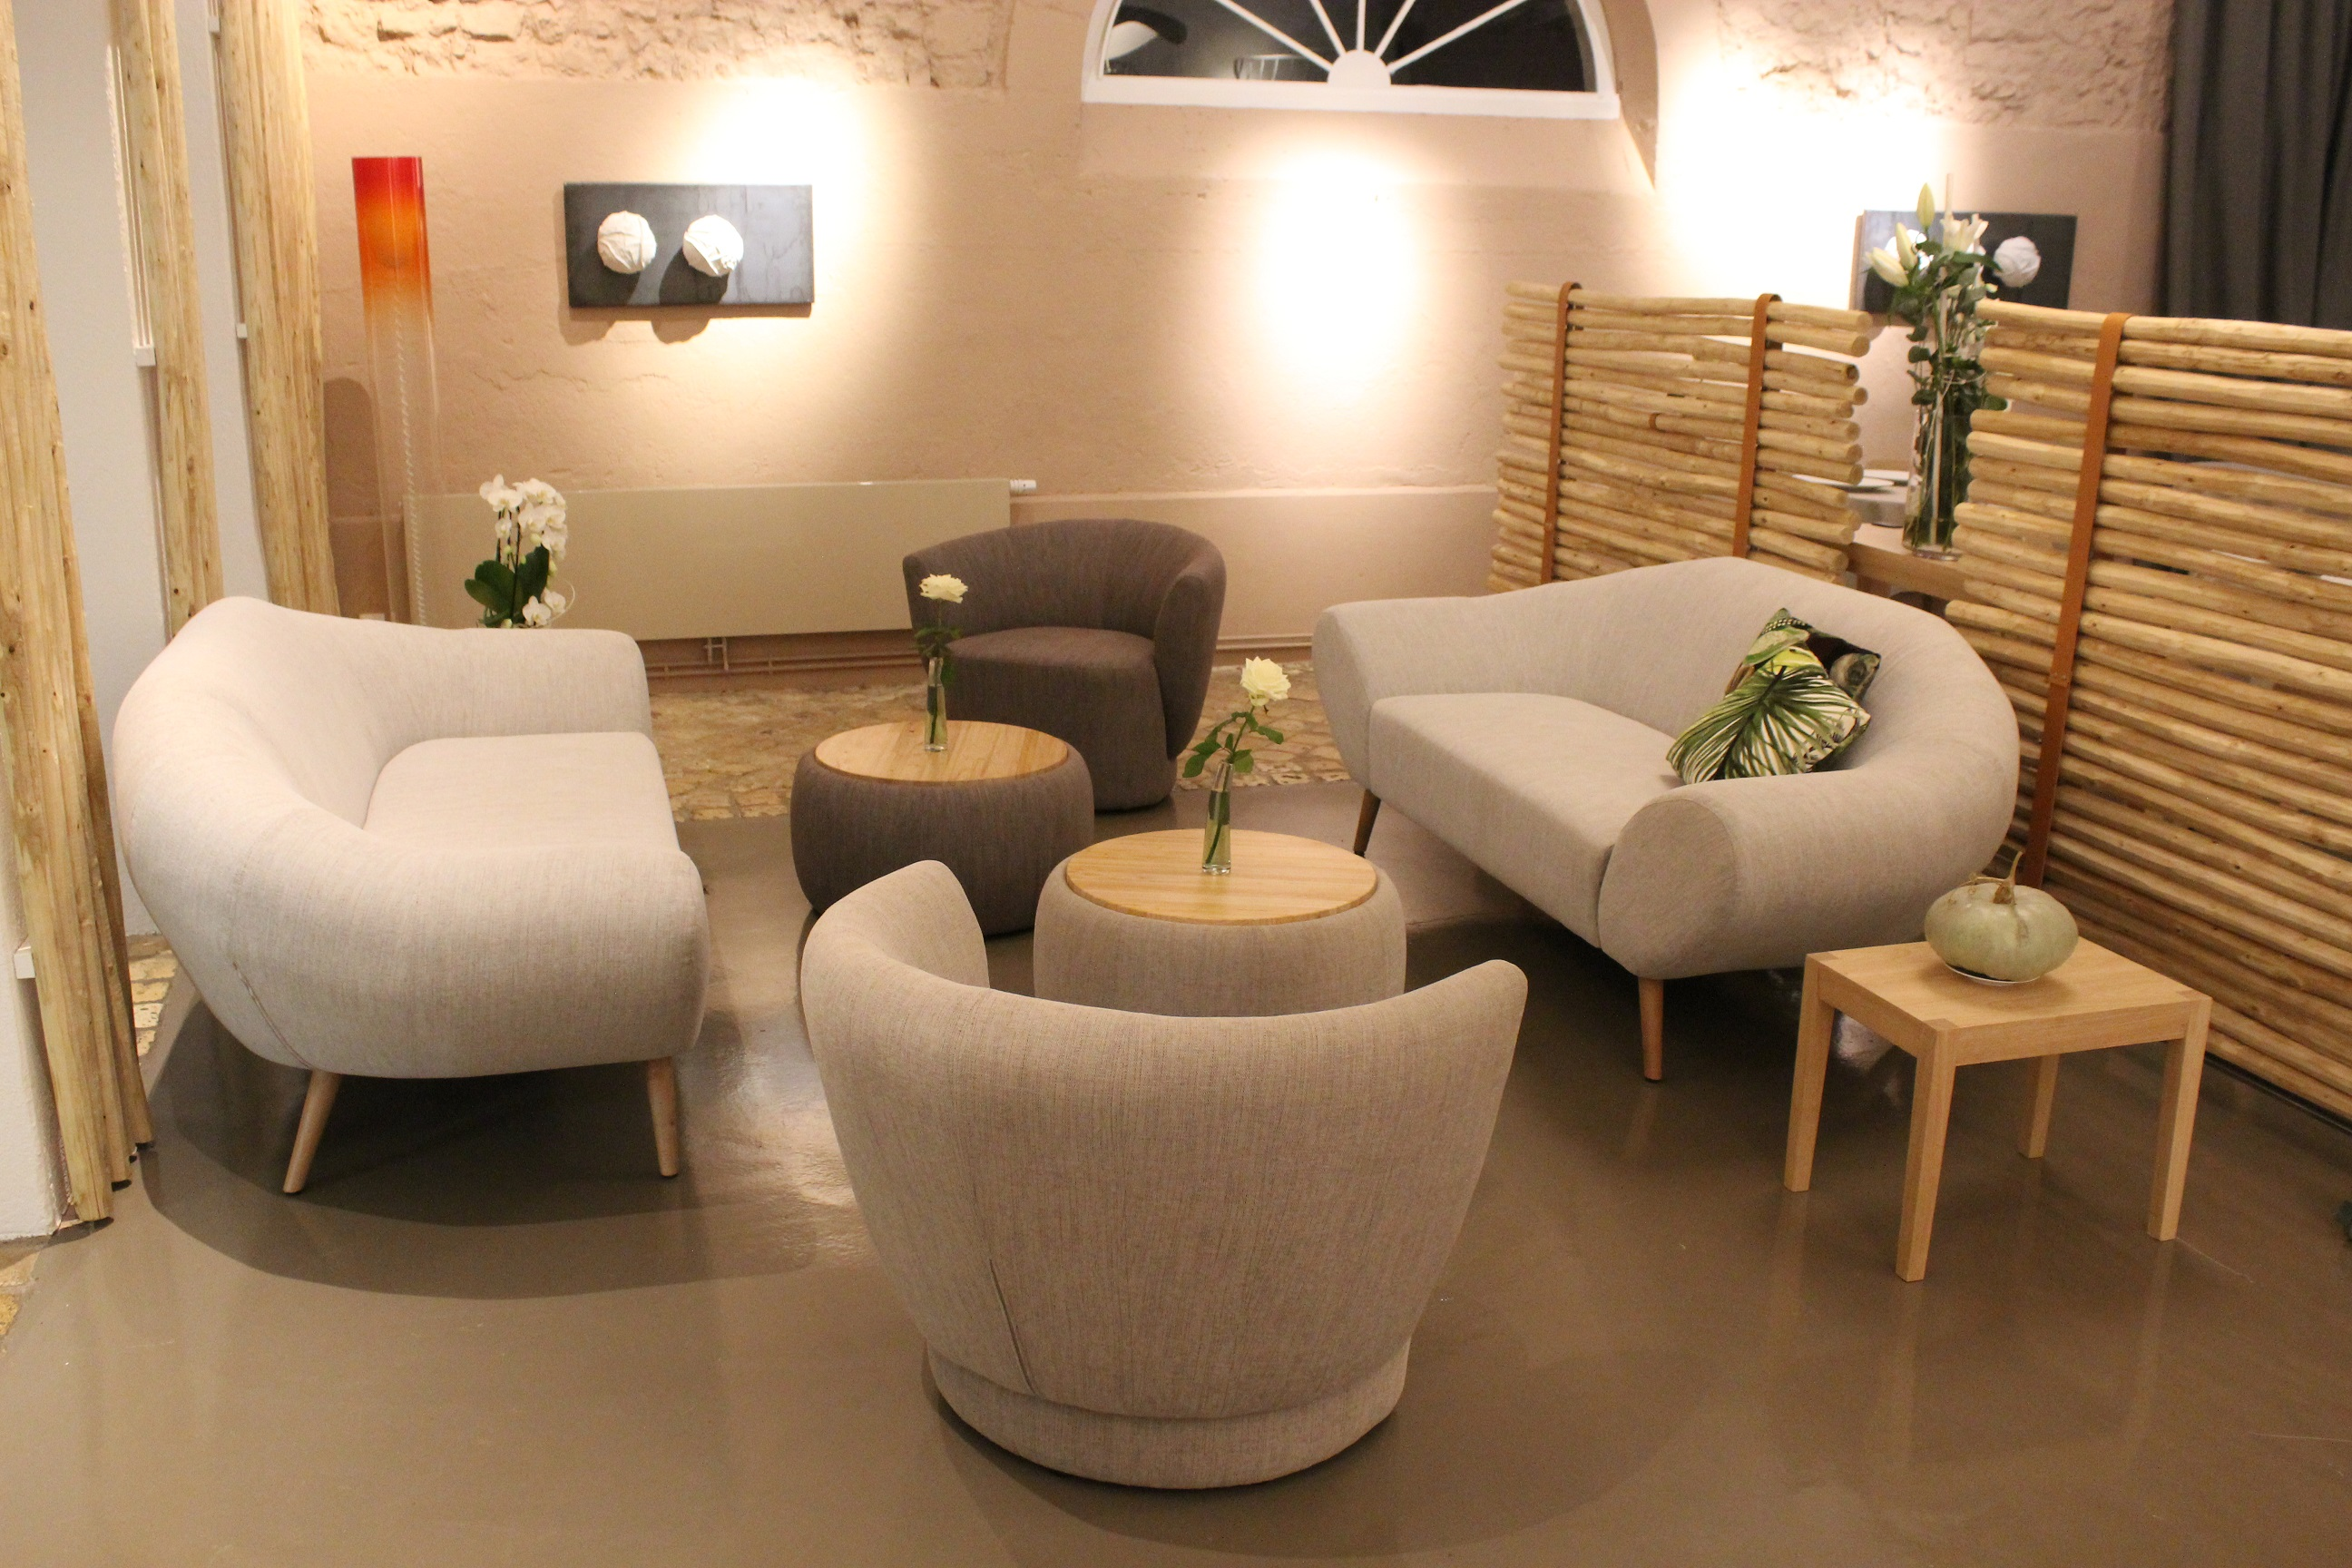 Mobiliers d'assise professionnels